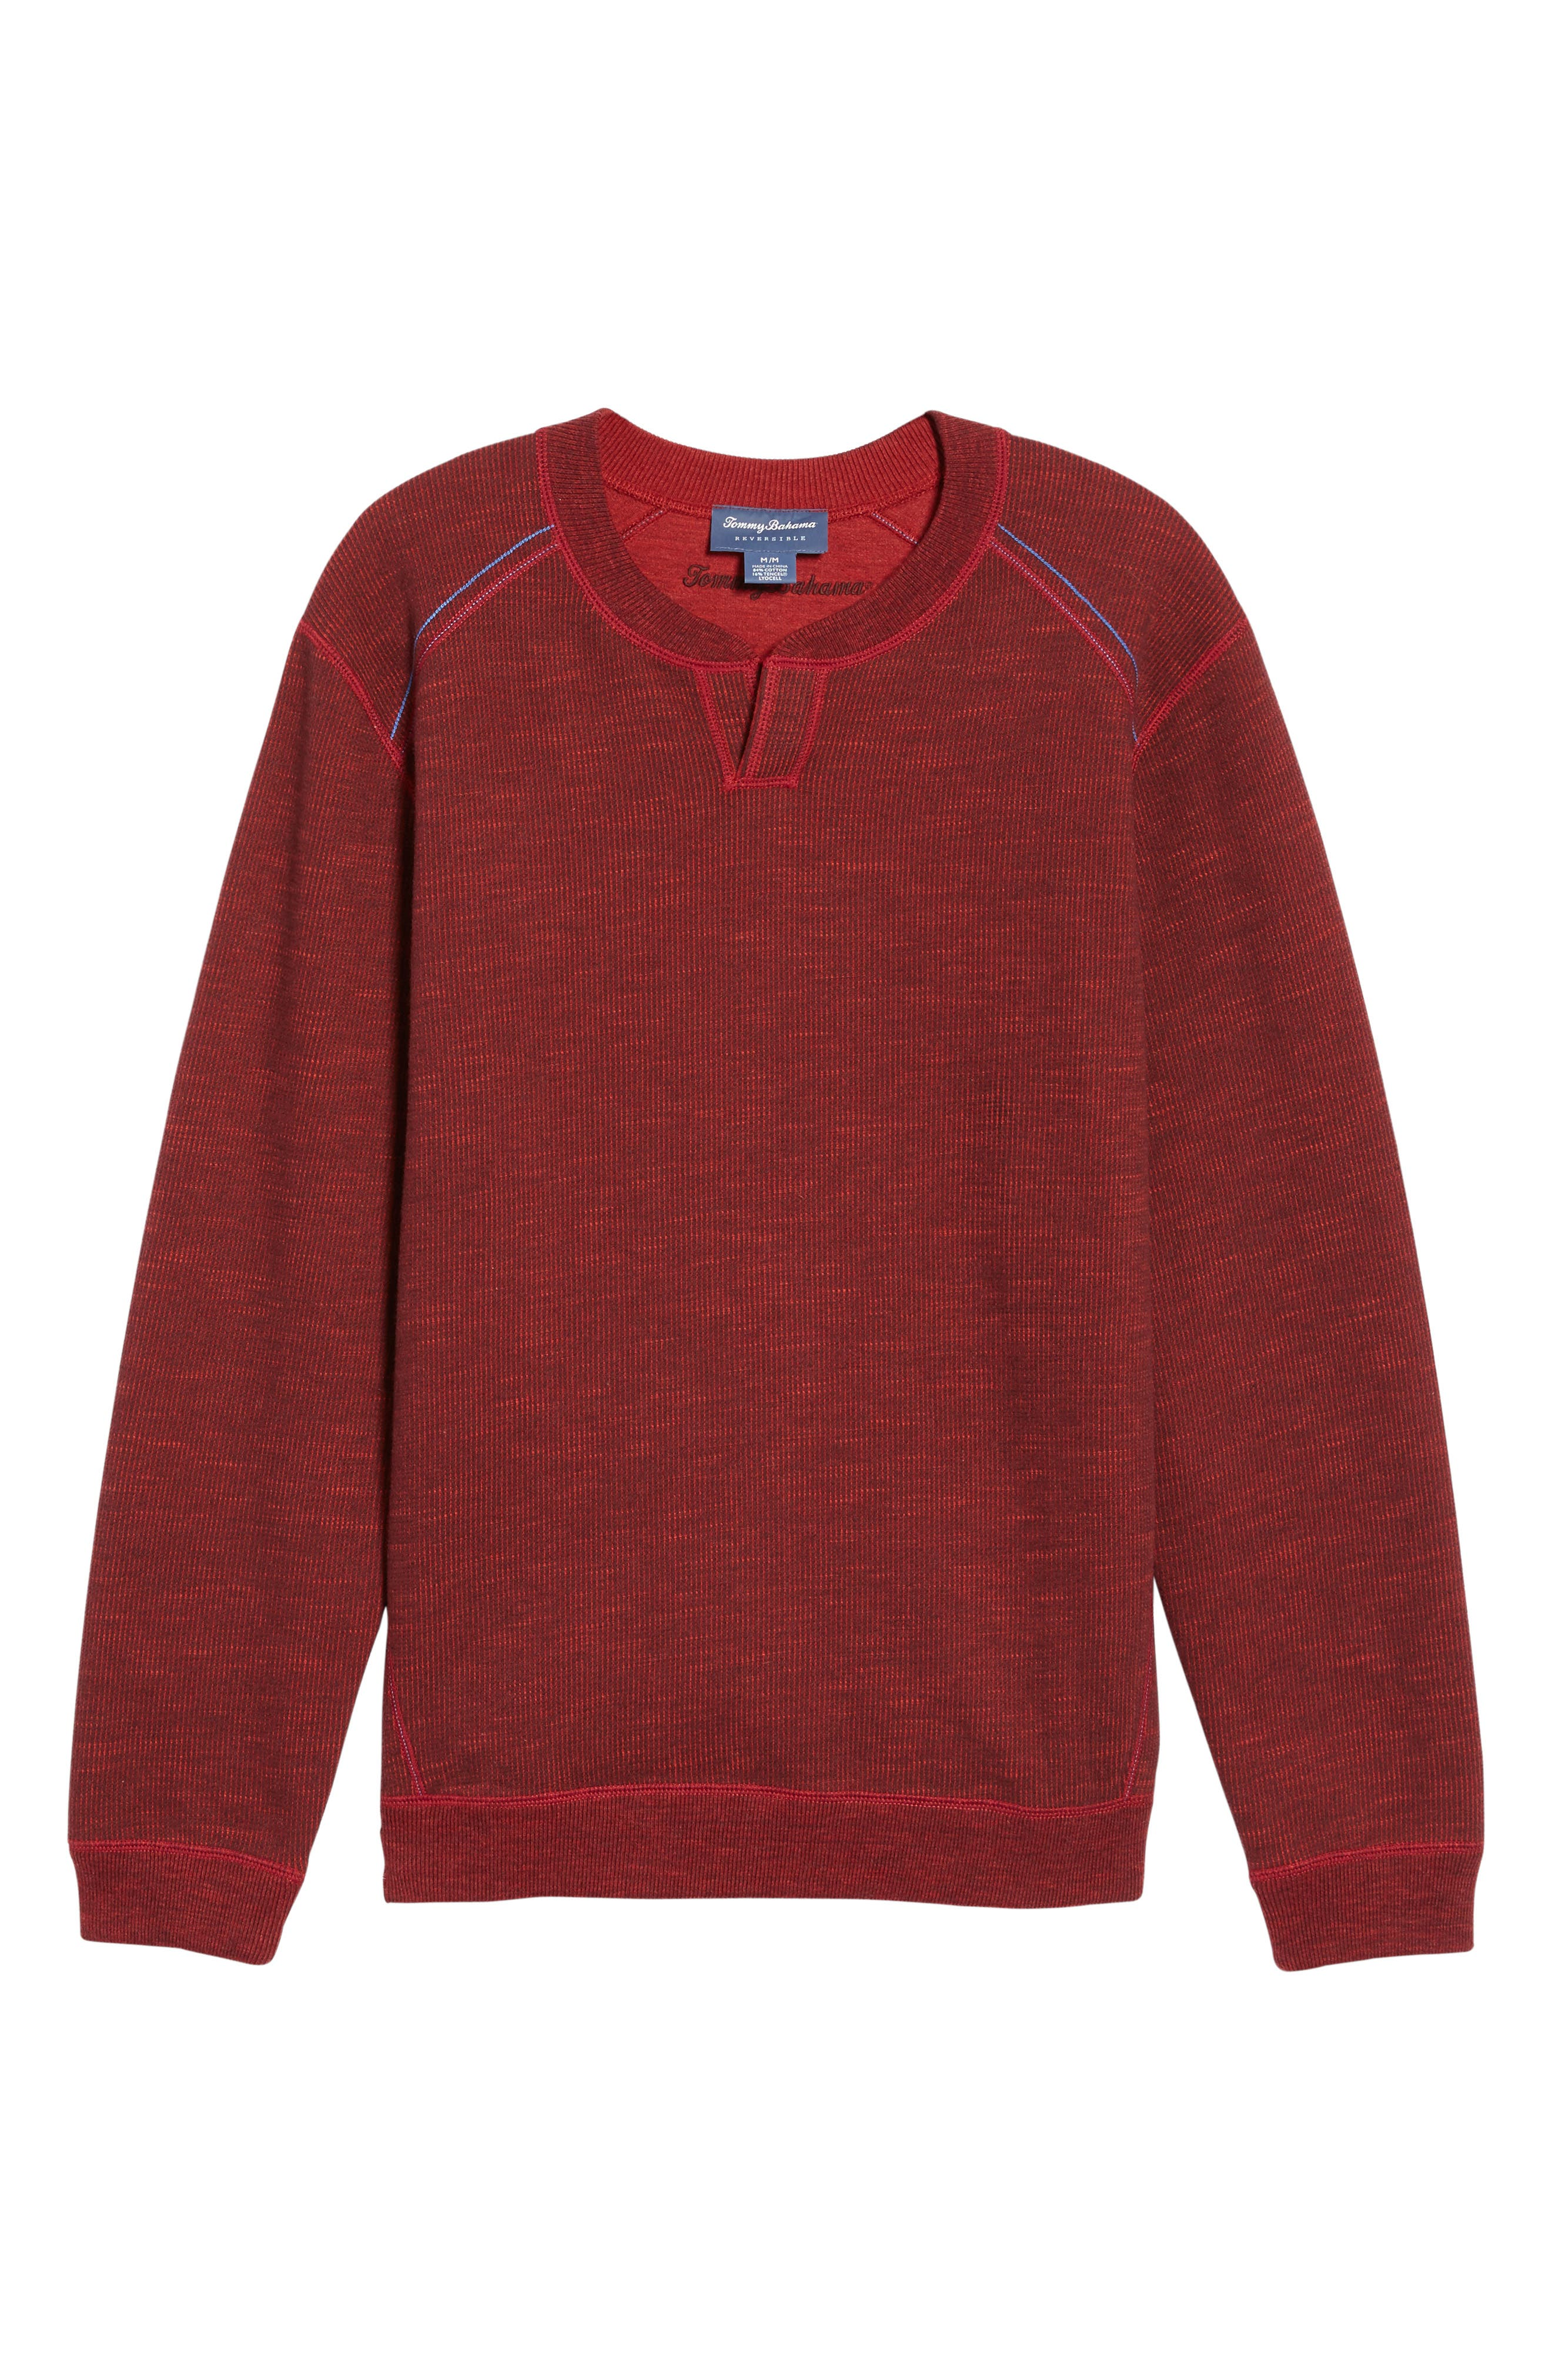 Flipsider Abaco Pullover,                             Alternate thumbnail 30, color,